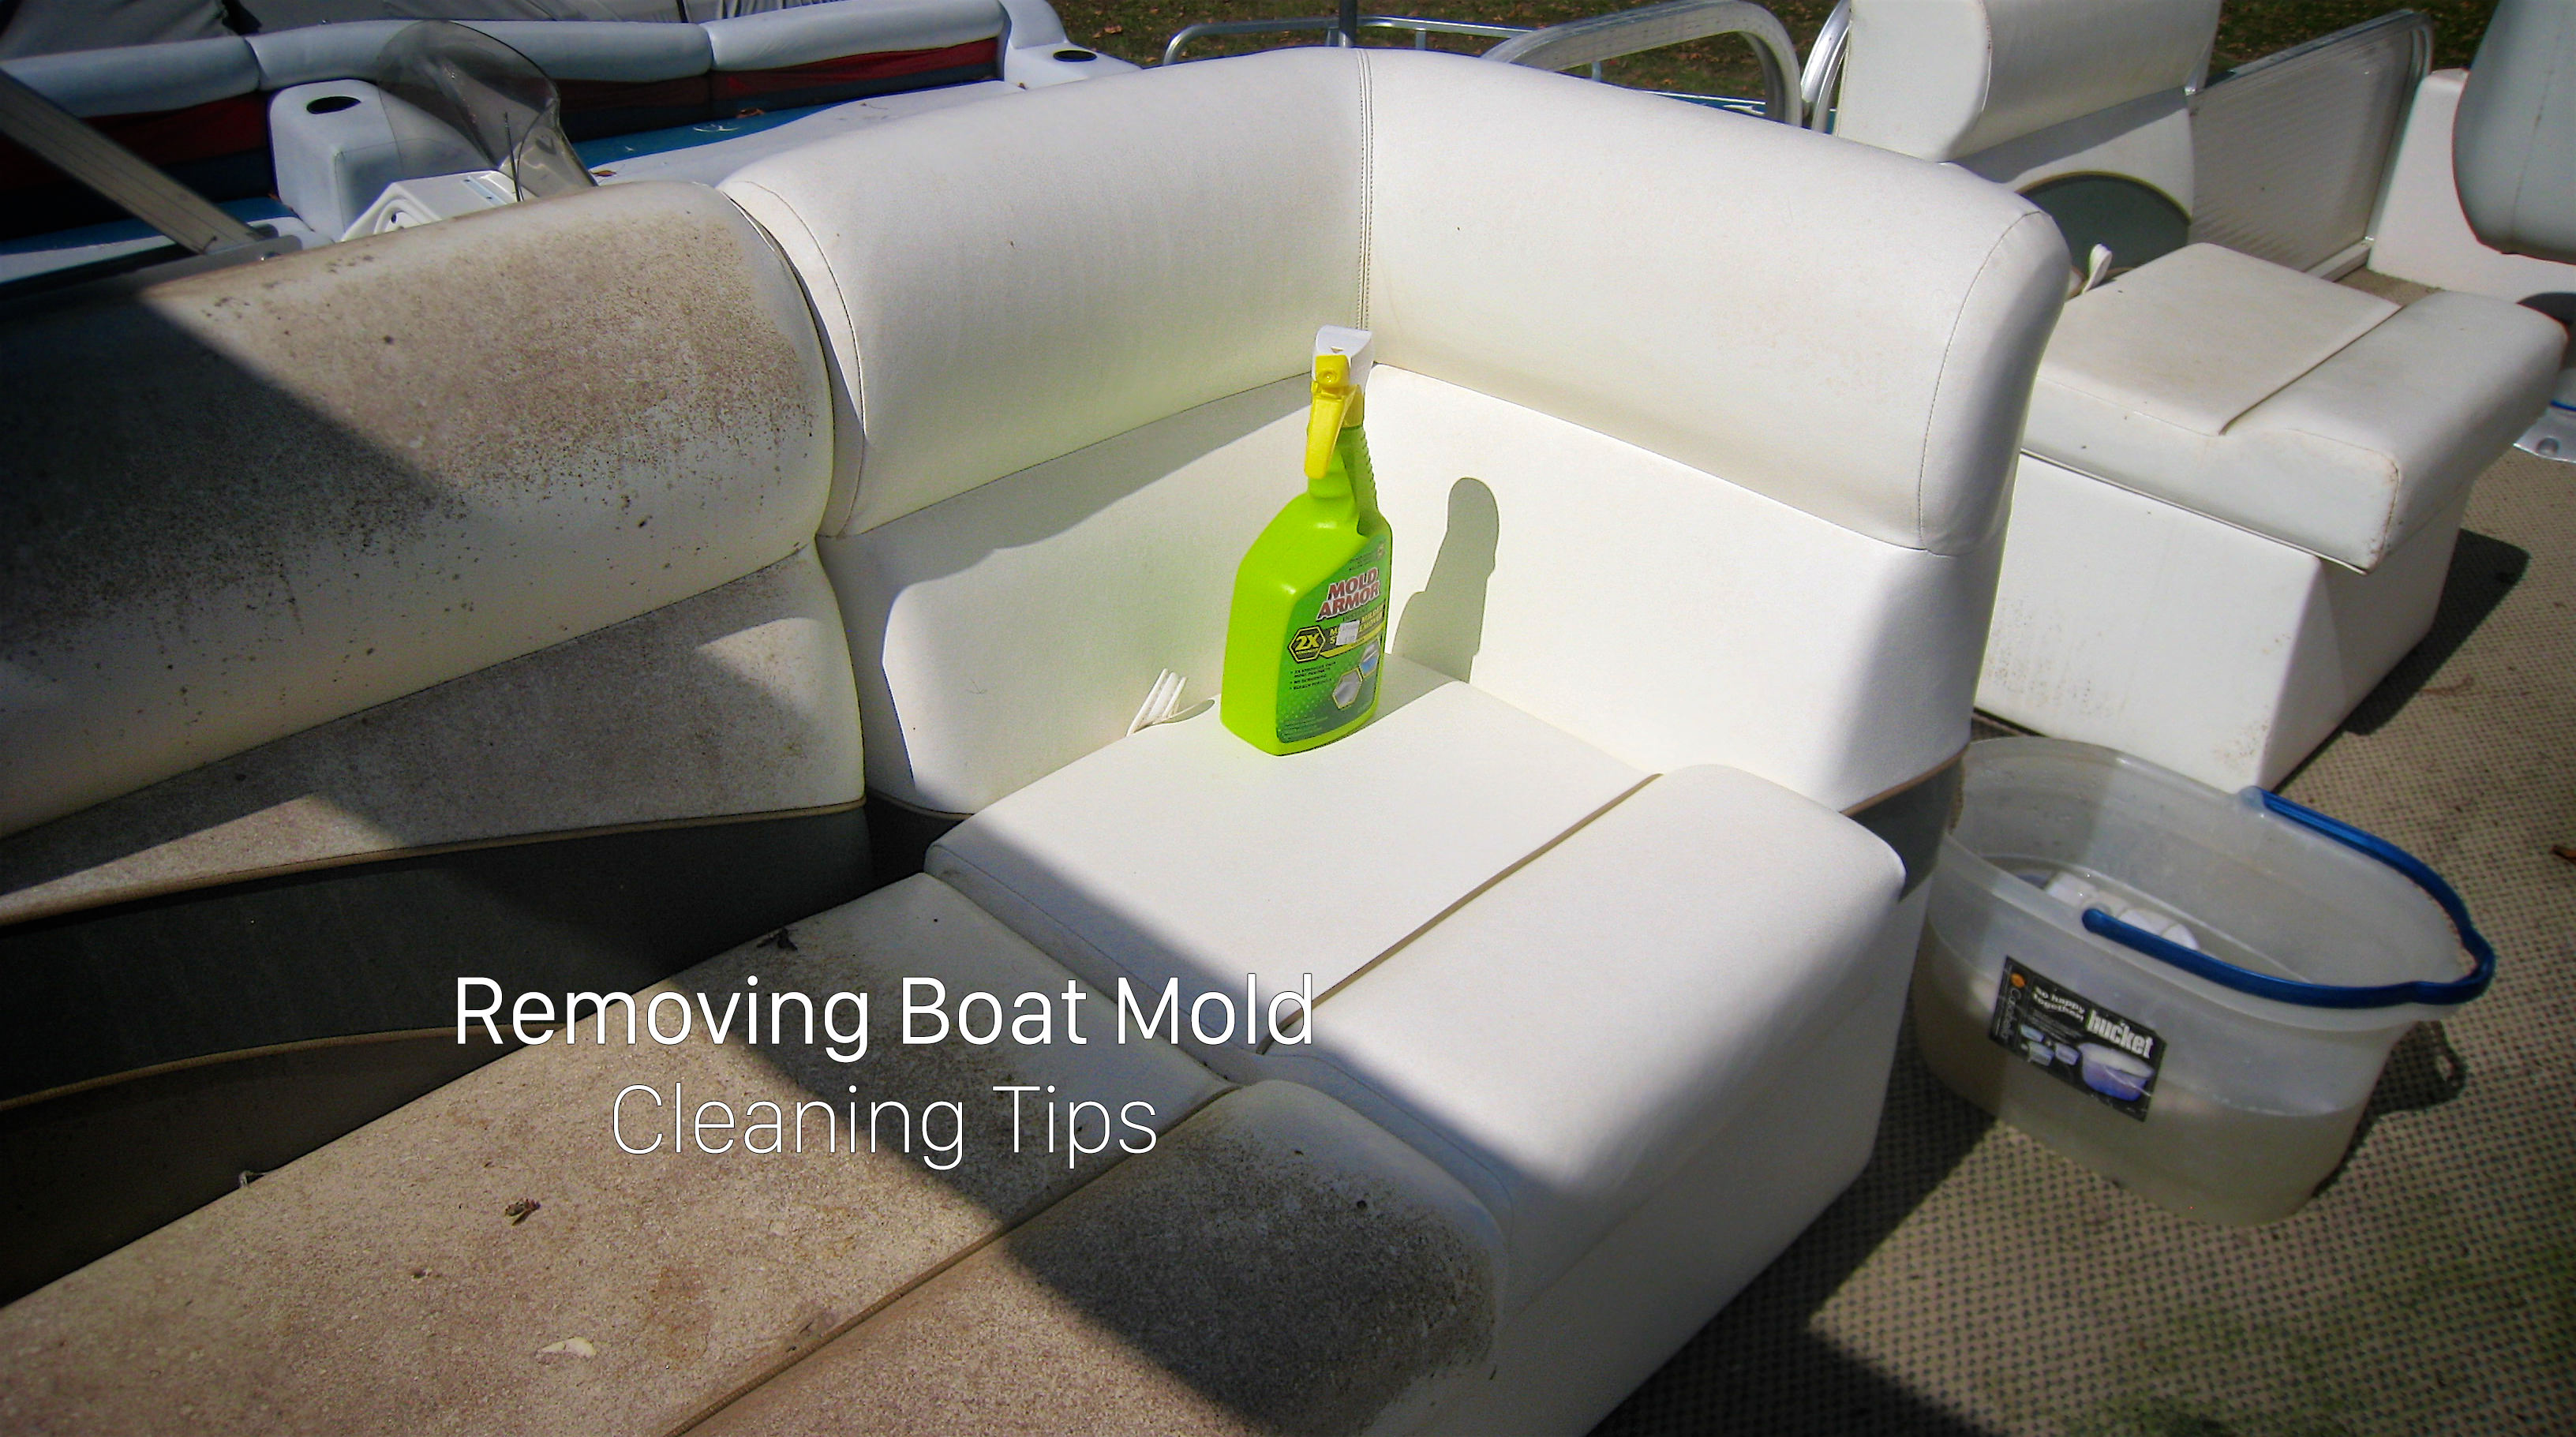 Removing Boat Mold